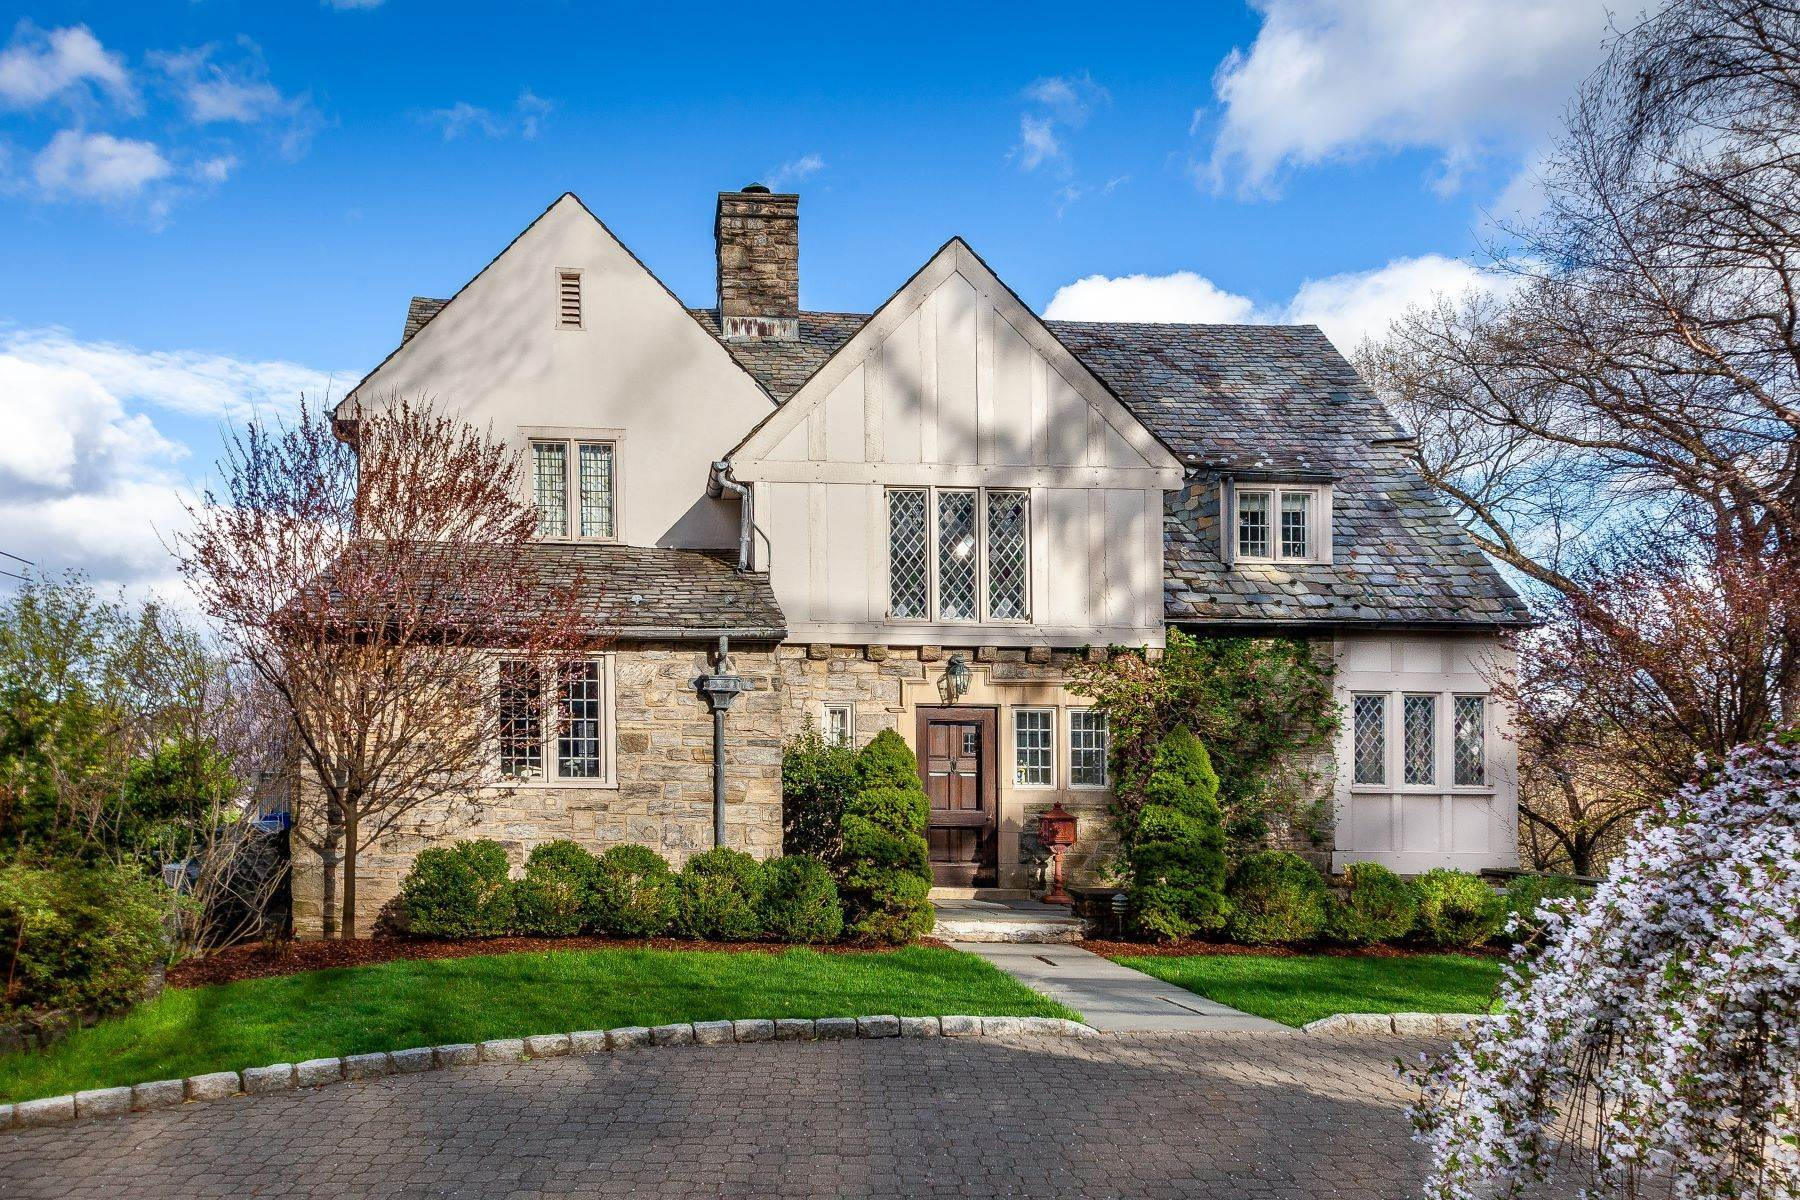 Single Family Homes for Sale at Welcome To 54 Prescott Avenue 54 Prescott Avenue Bronxville, New York 10708 United States